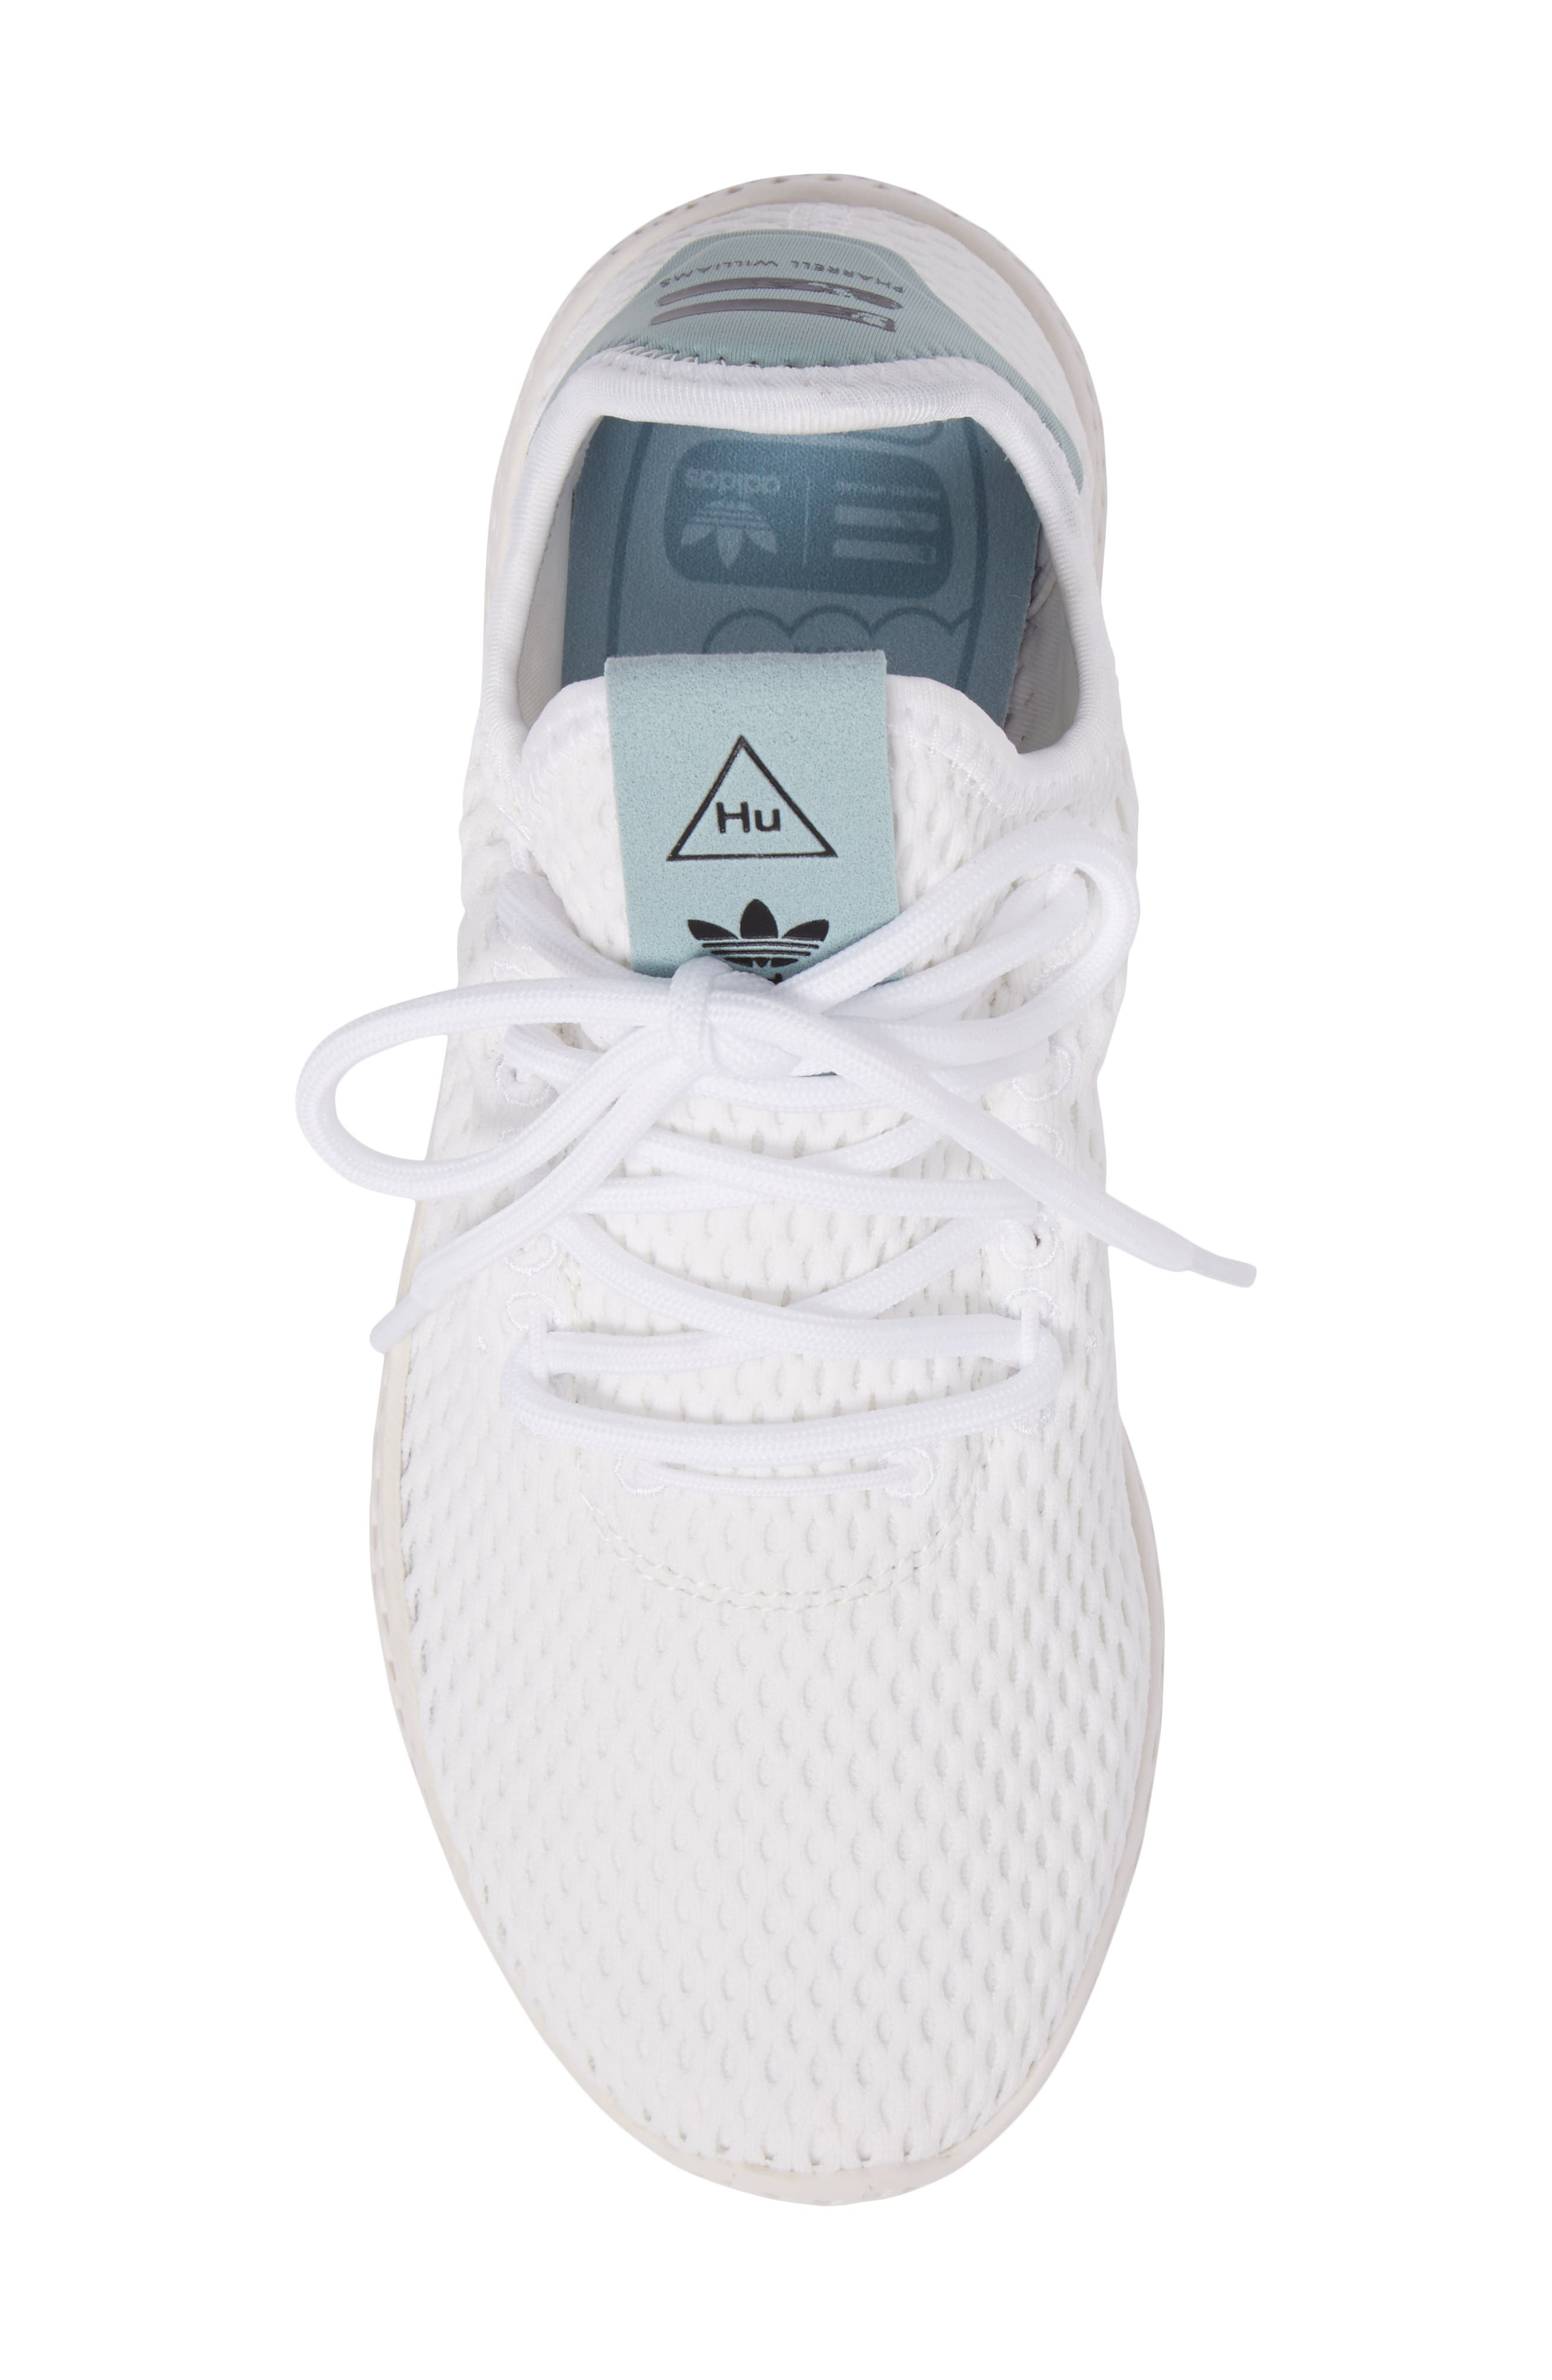 Originals x Pharrell Williams The Summers Mesh Sneaker,                             Alternate thumbnail 5, color,                             Footwear White/ Linen Green